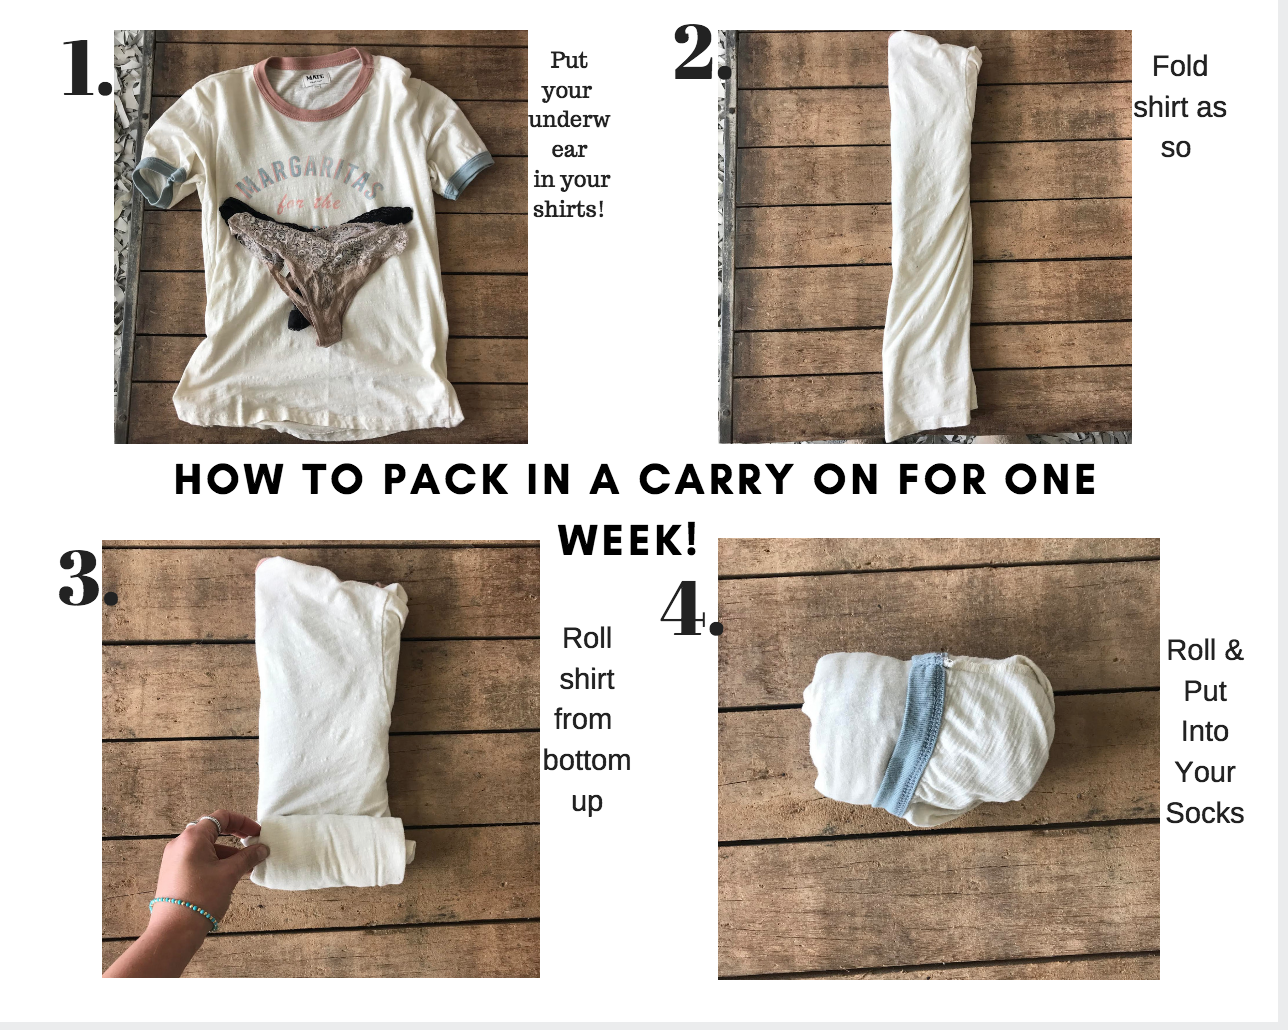 HOw To Pack In A Carry On For One Week!